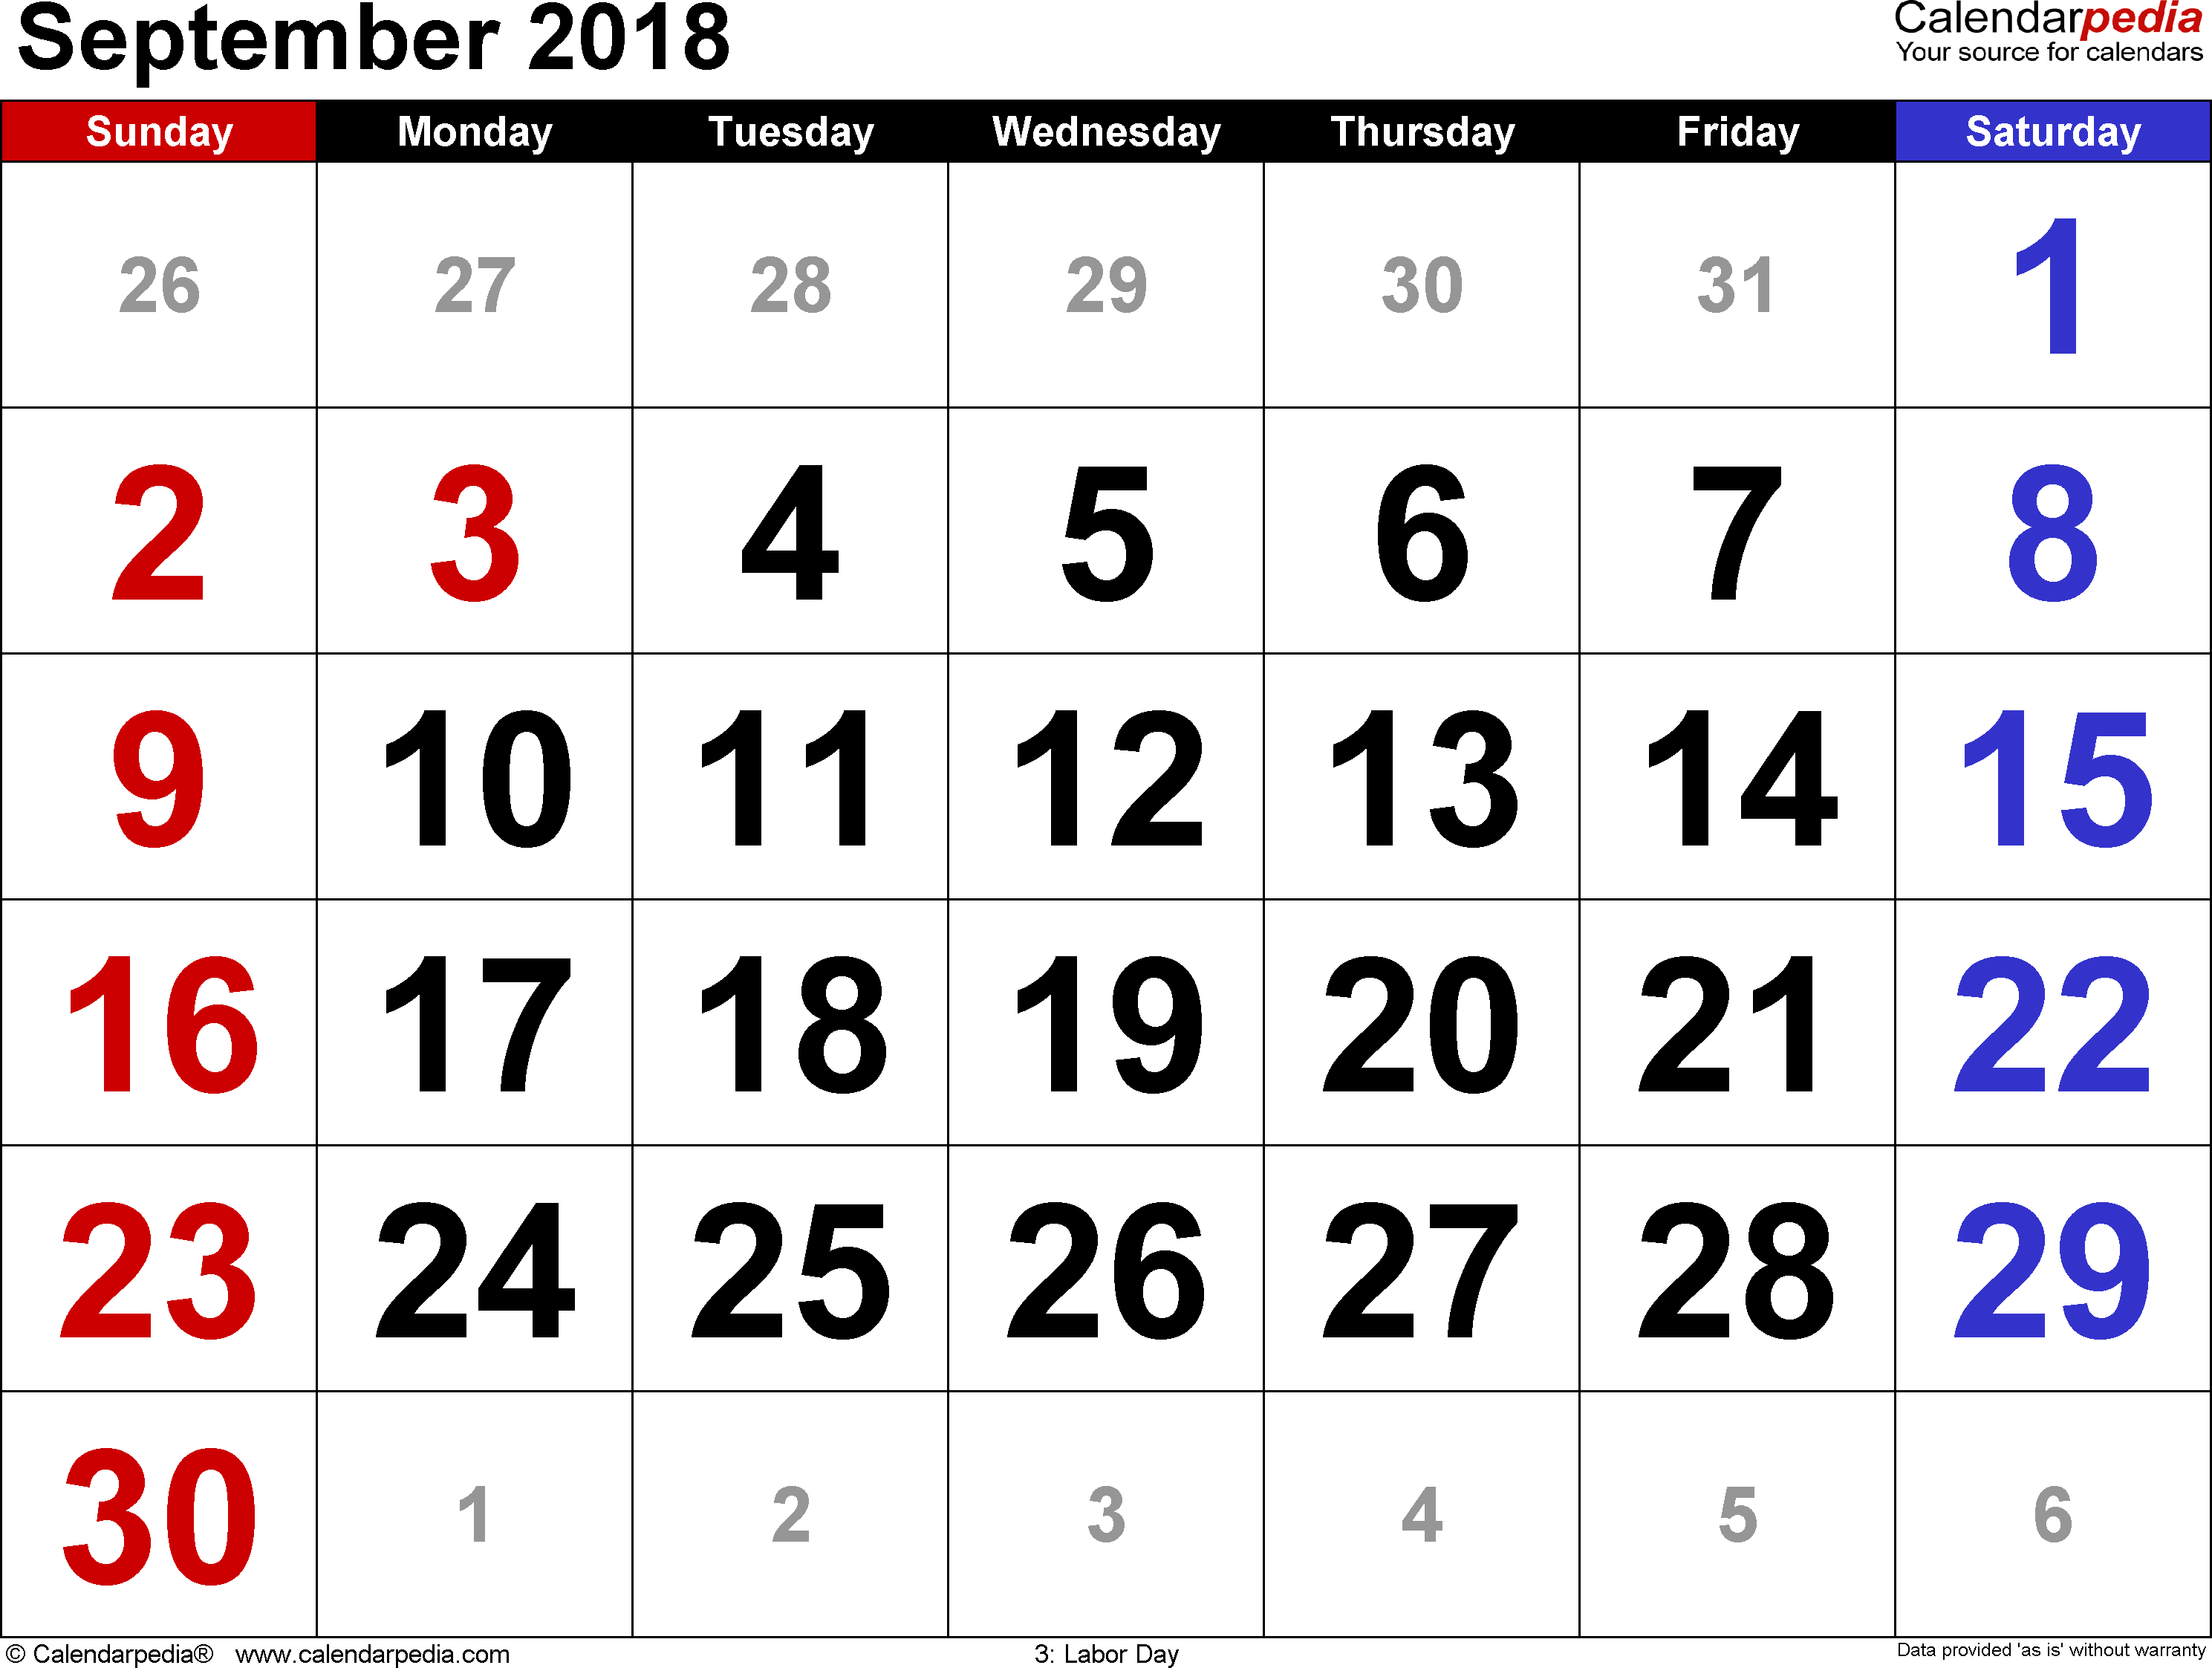 September 2018 Calendars for Word, Excel & PDF